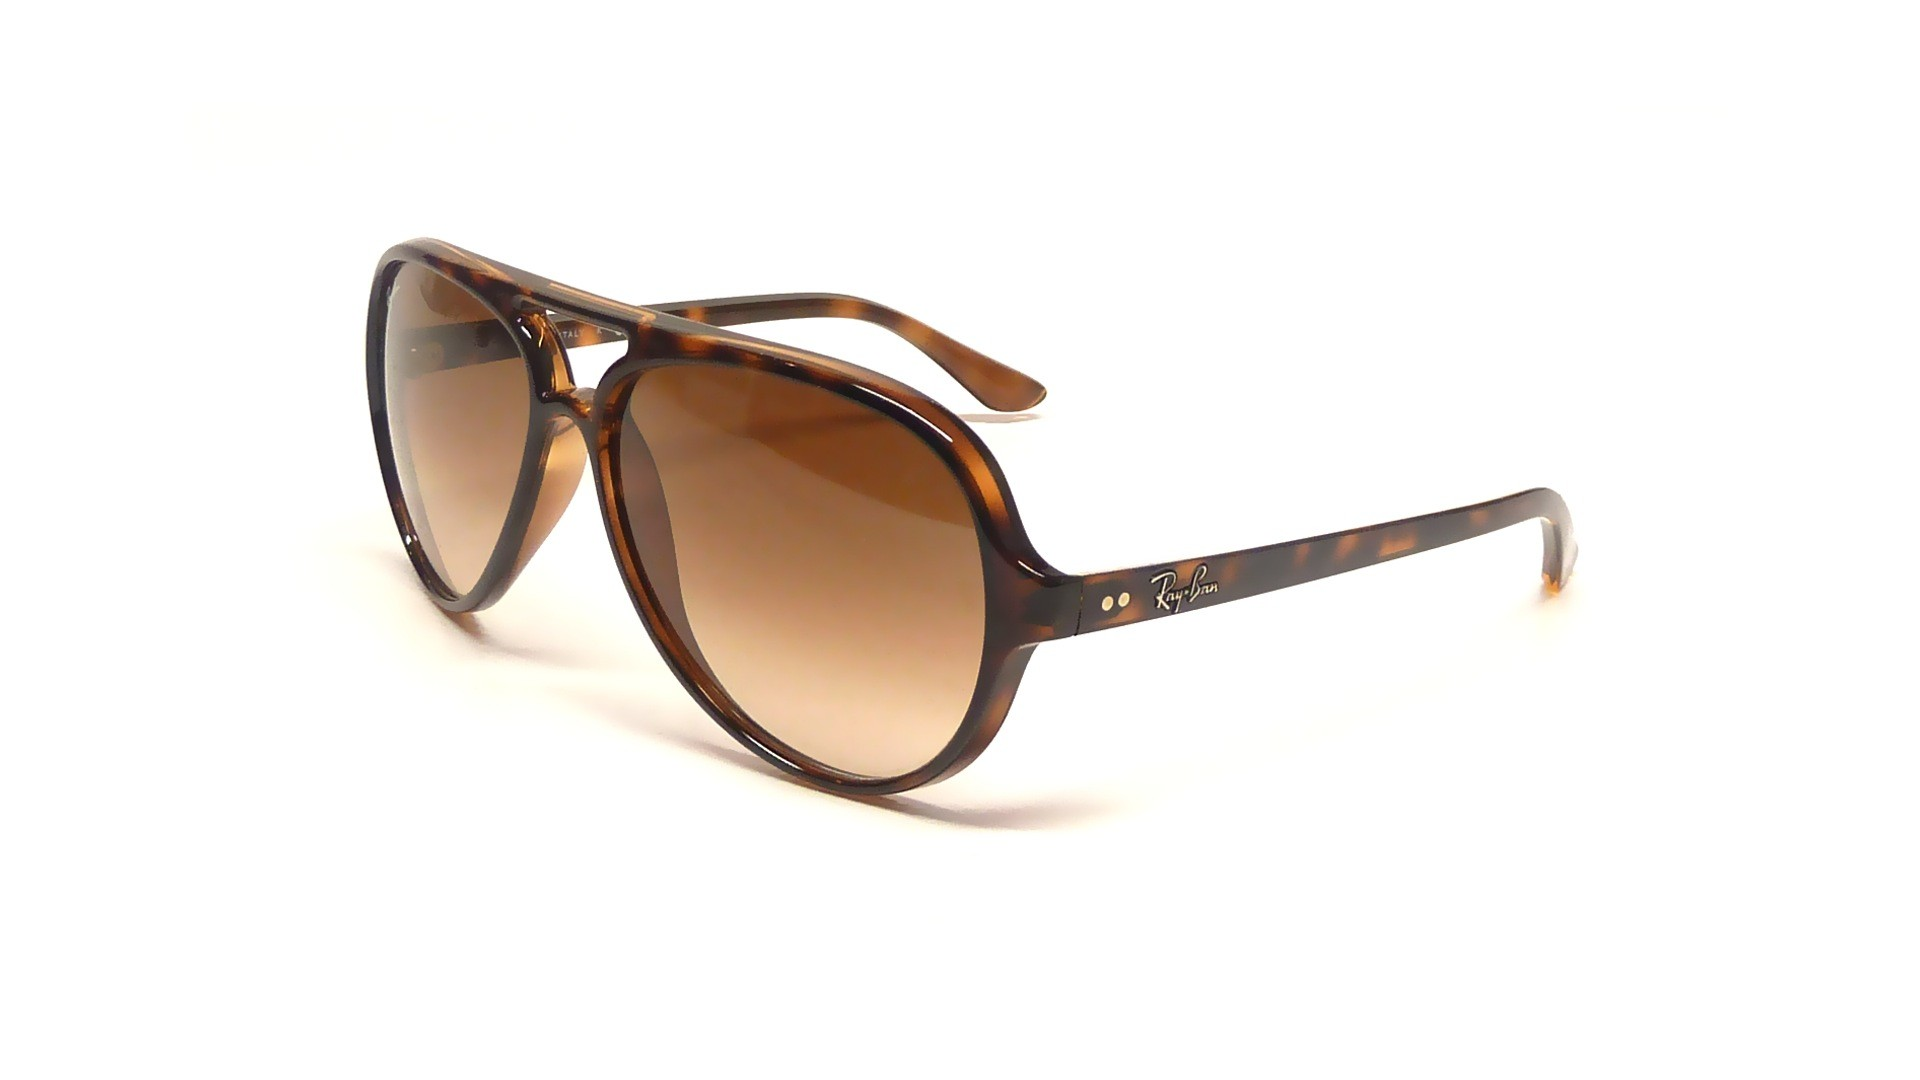 7d90e92767 Ray Ban Rb4154 710 | www.tapdance.org